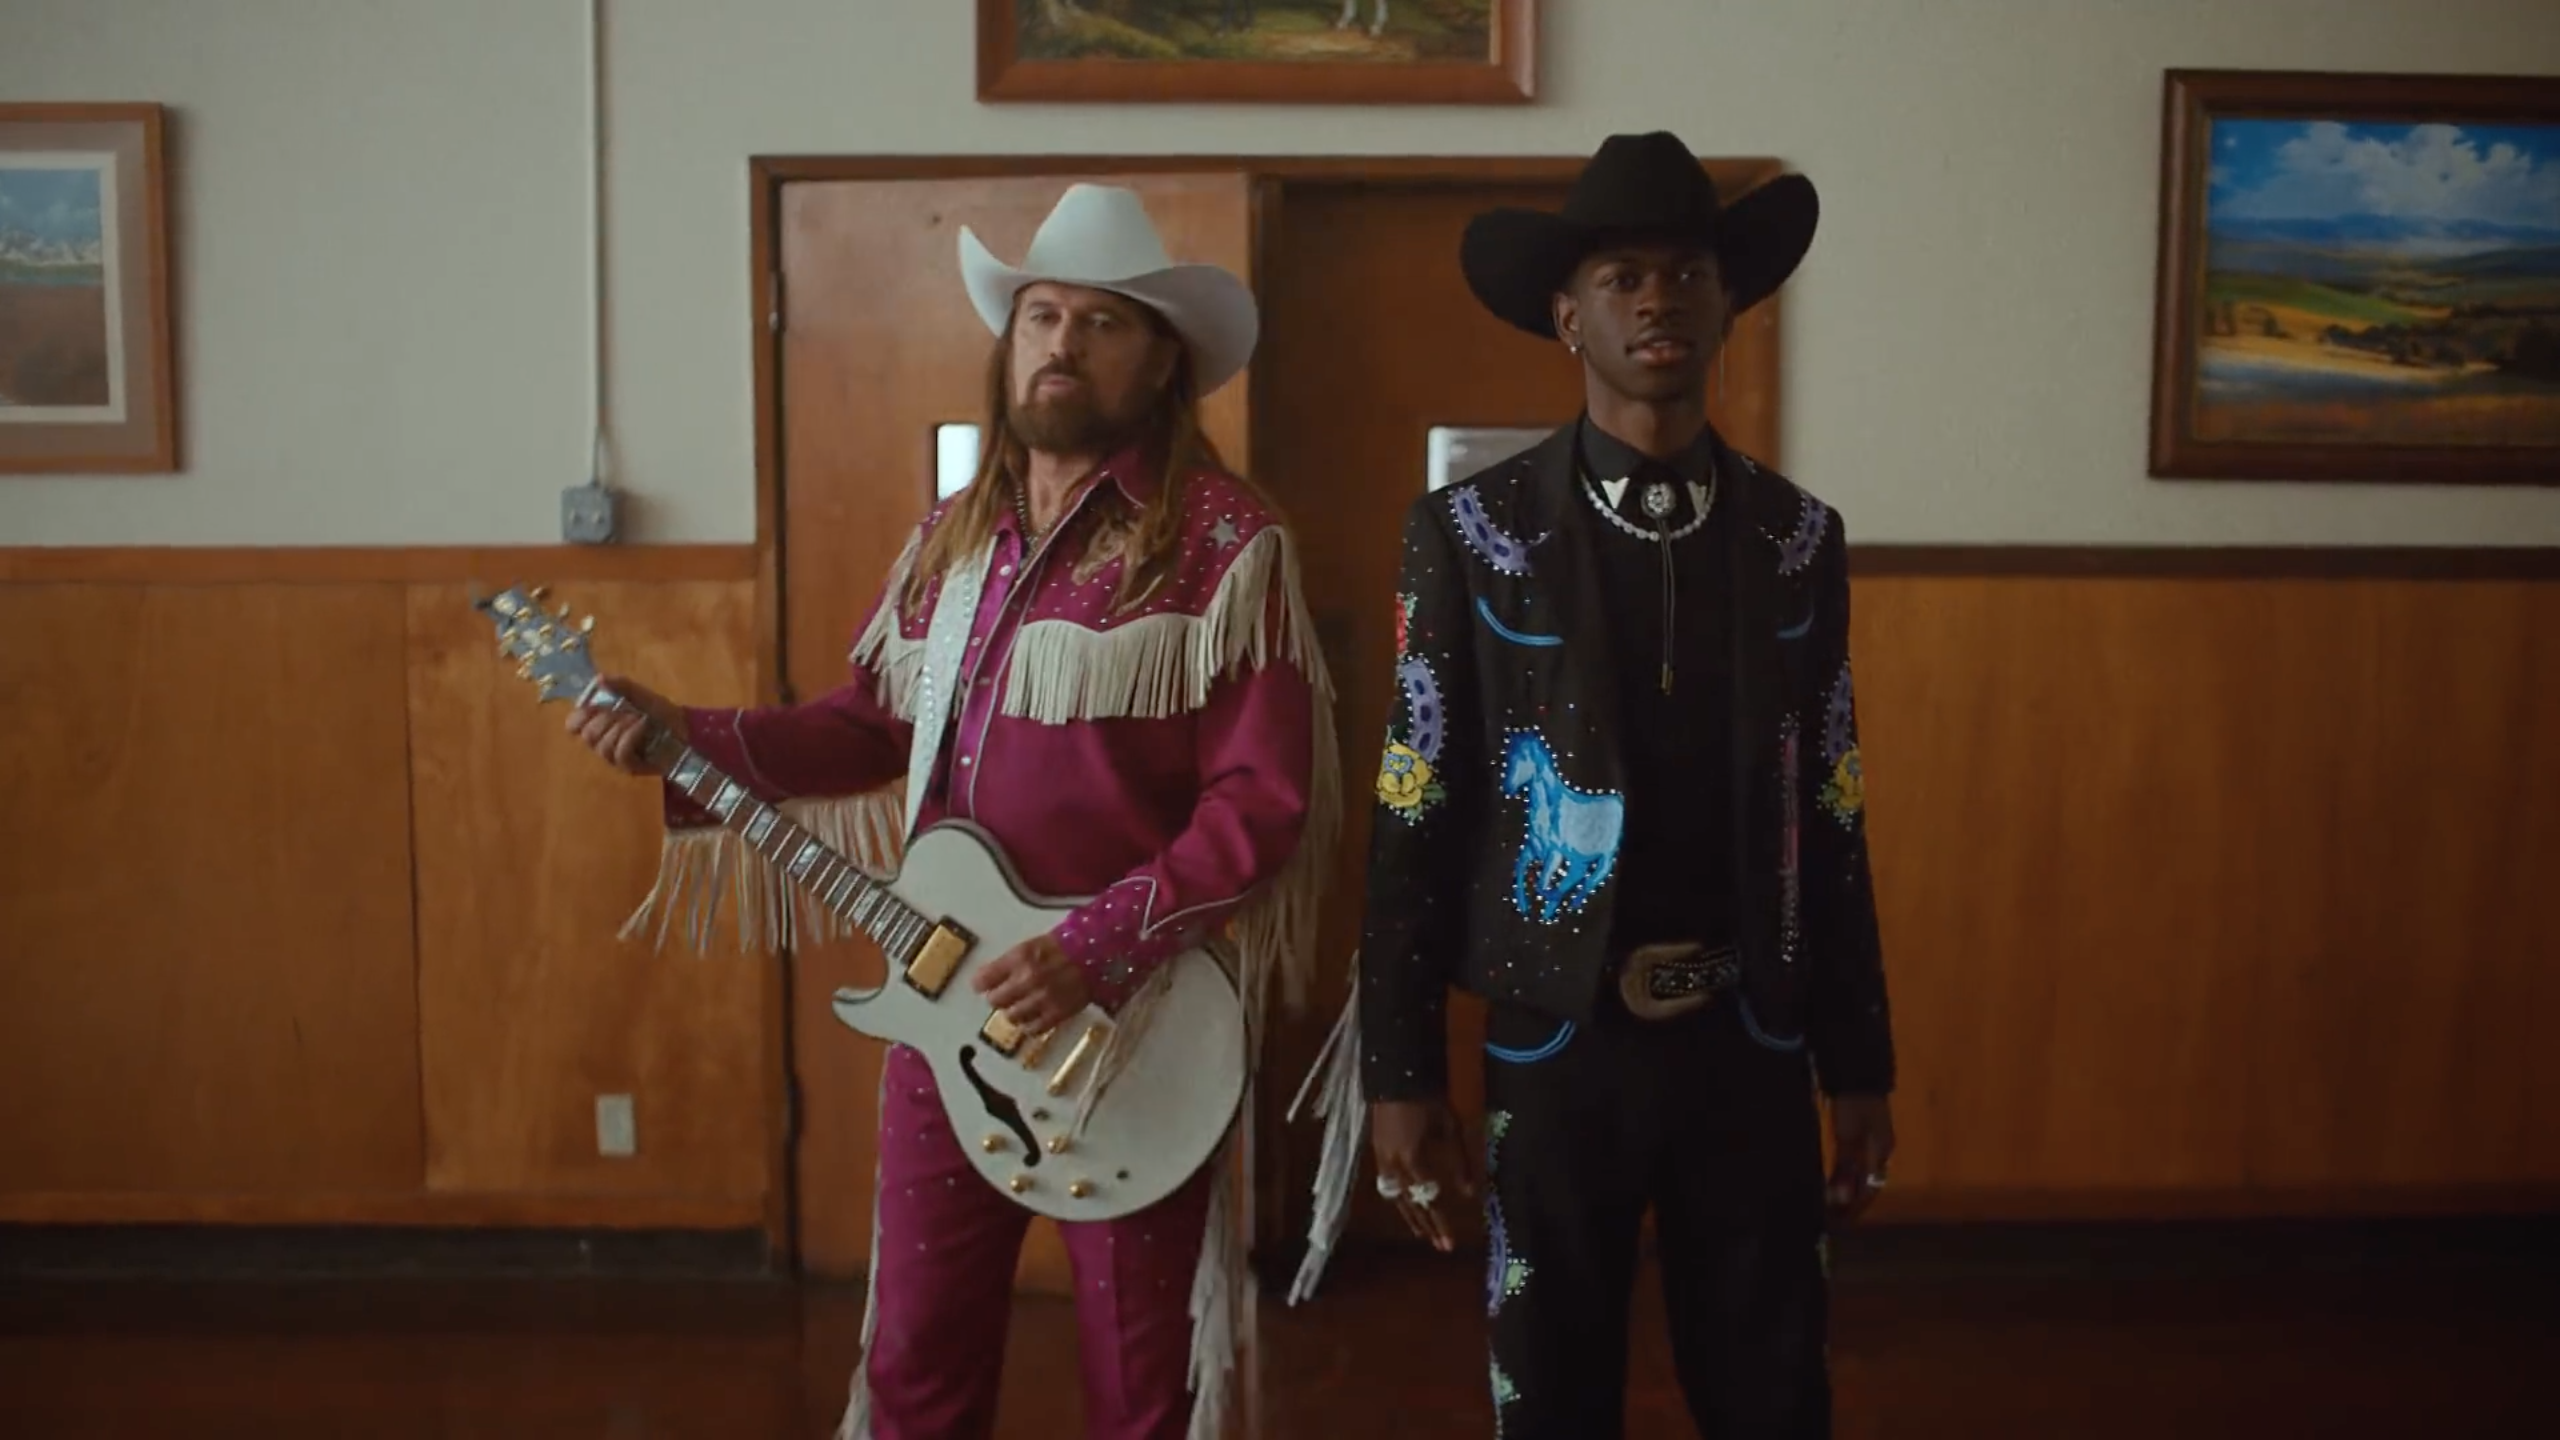 How to play along with Old Town Road by Lil Nas X